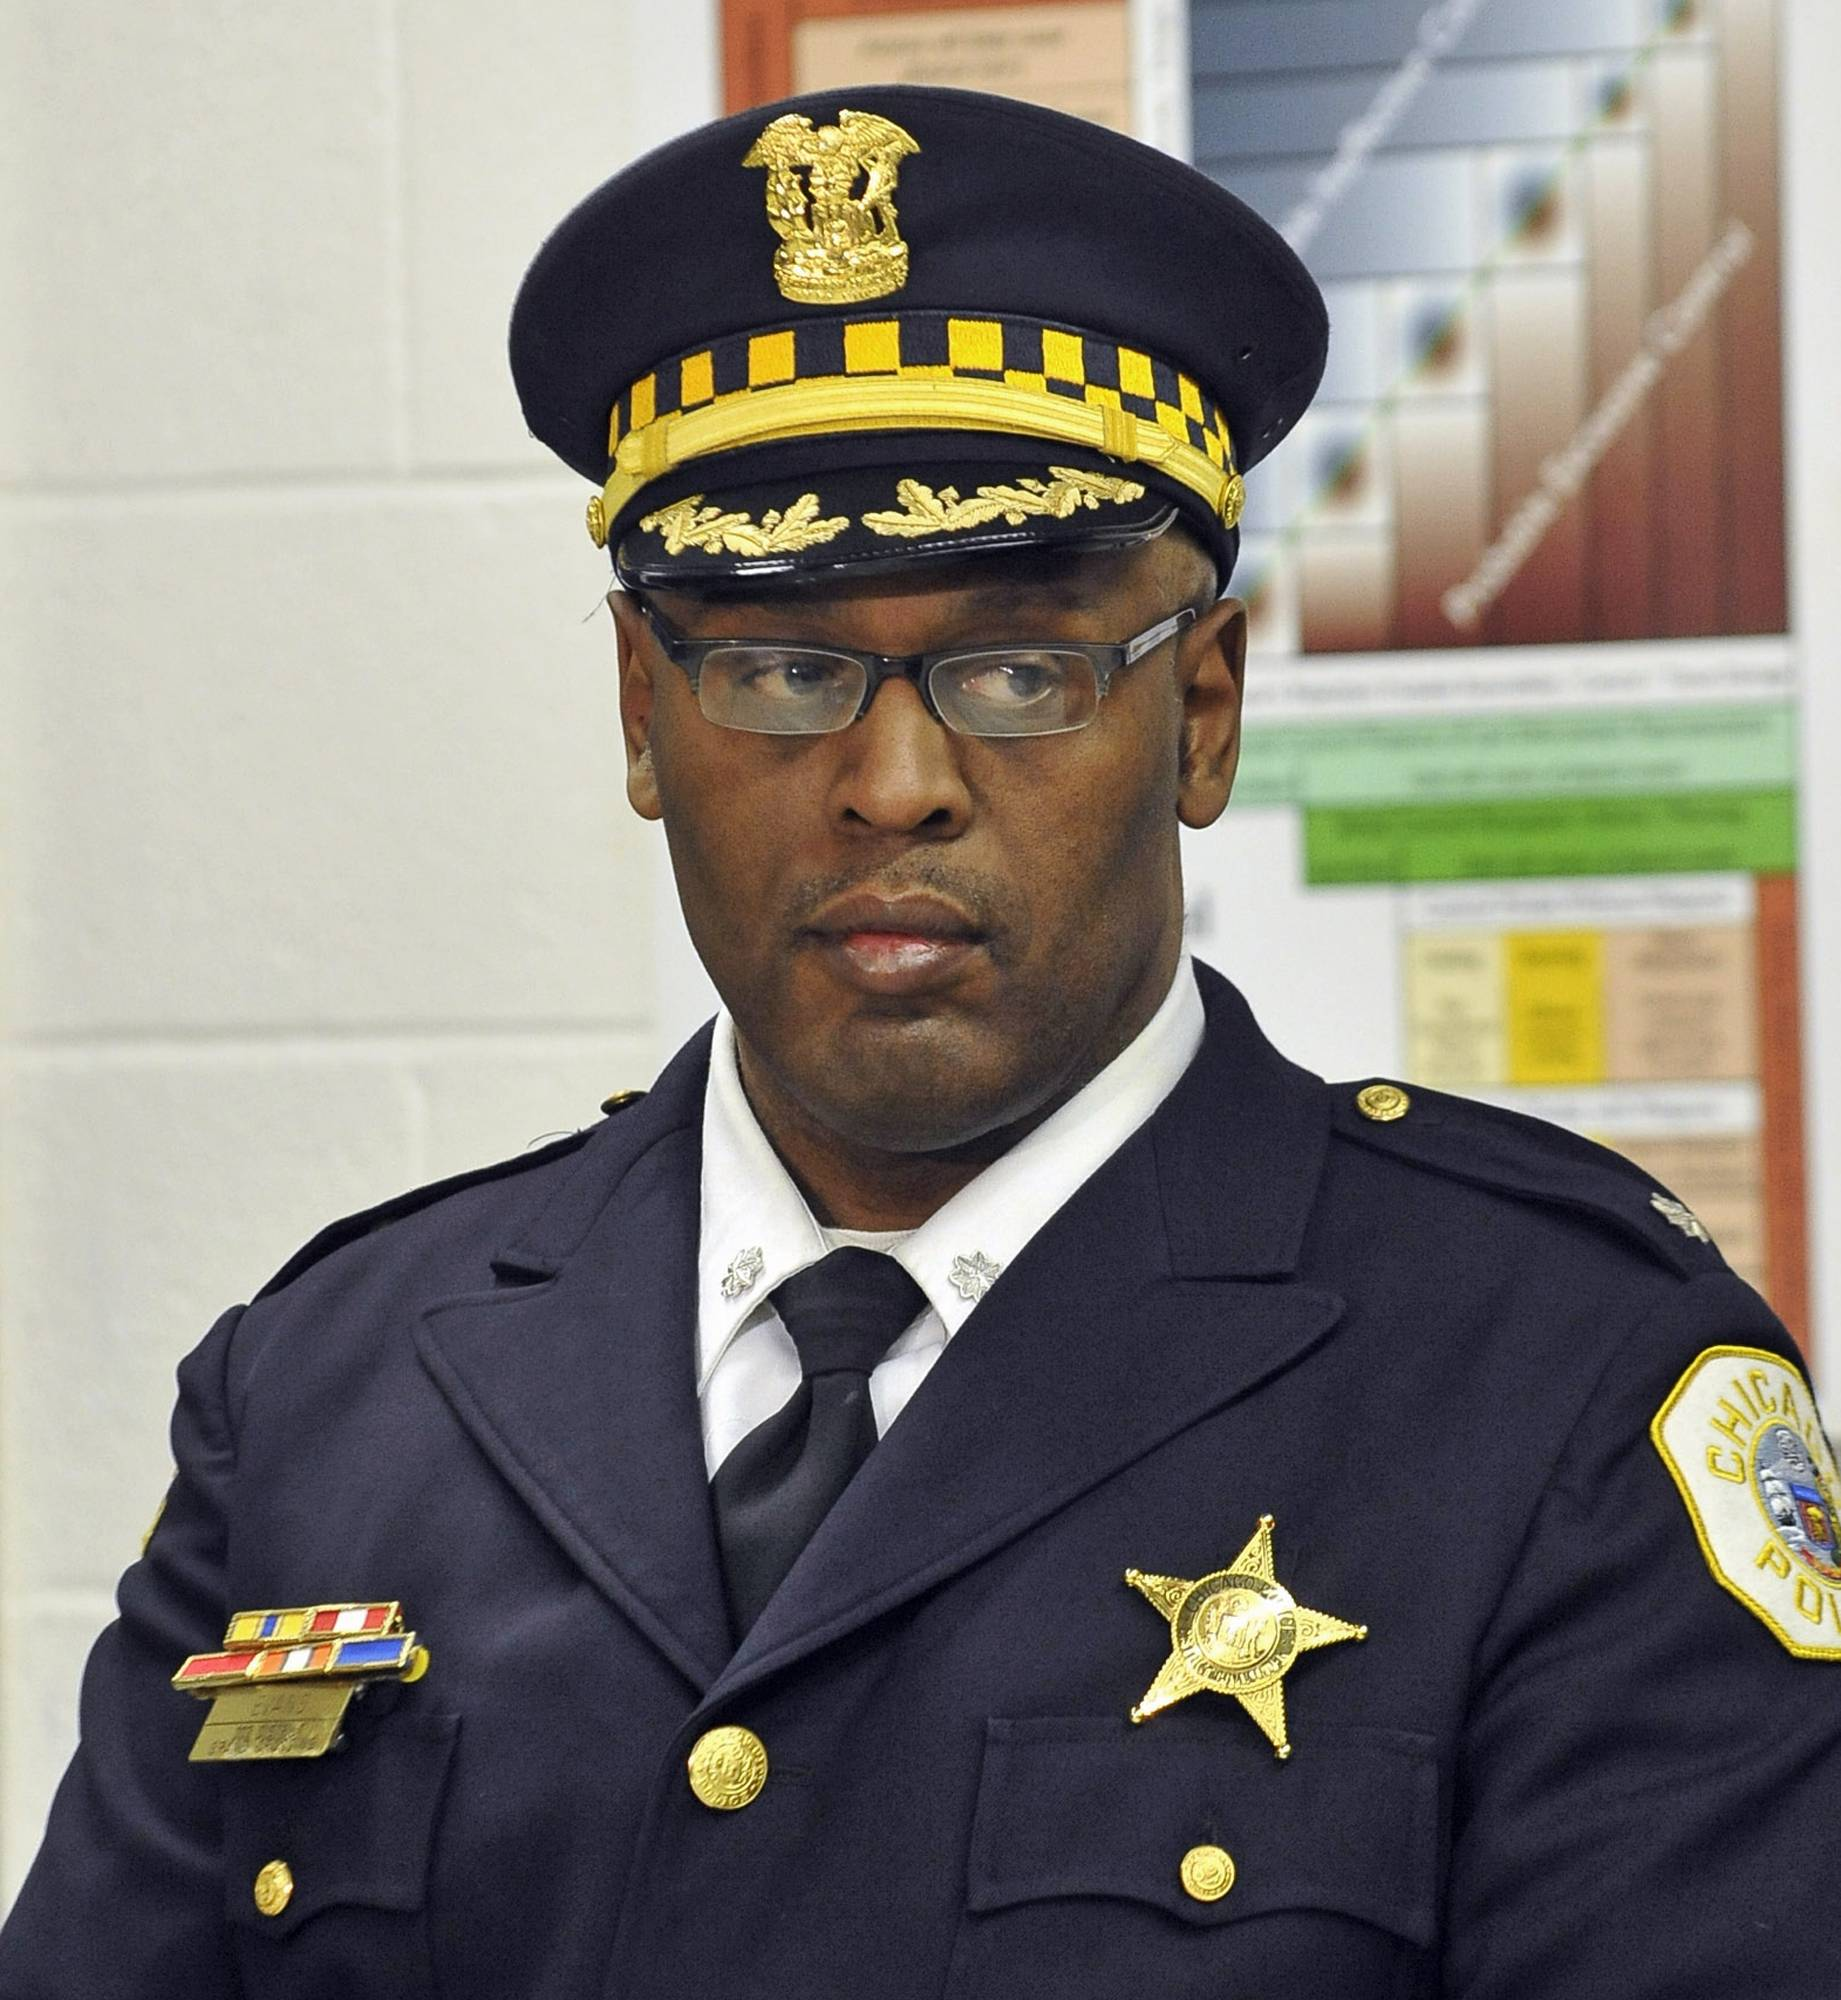 Chicago police Cmdr. Glenn Evans has been stripped of his police powers after being charged with aggravated battery and official misconduct.